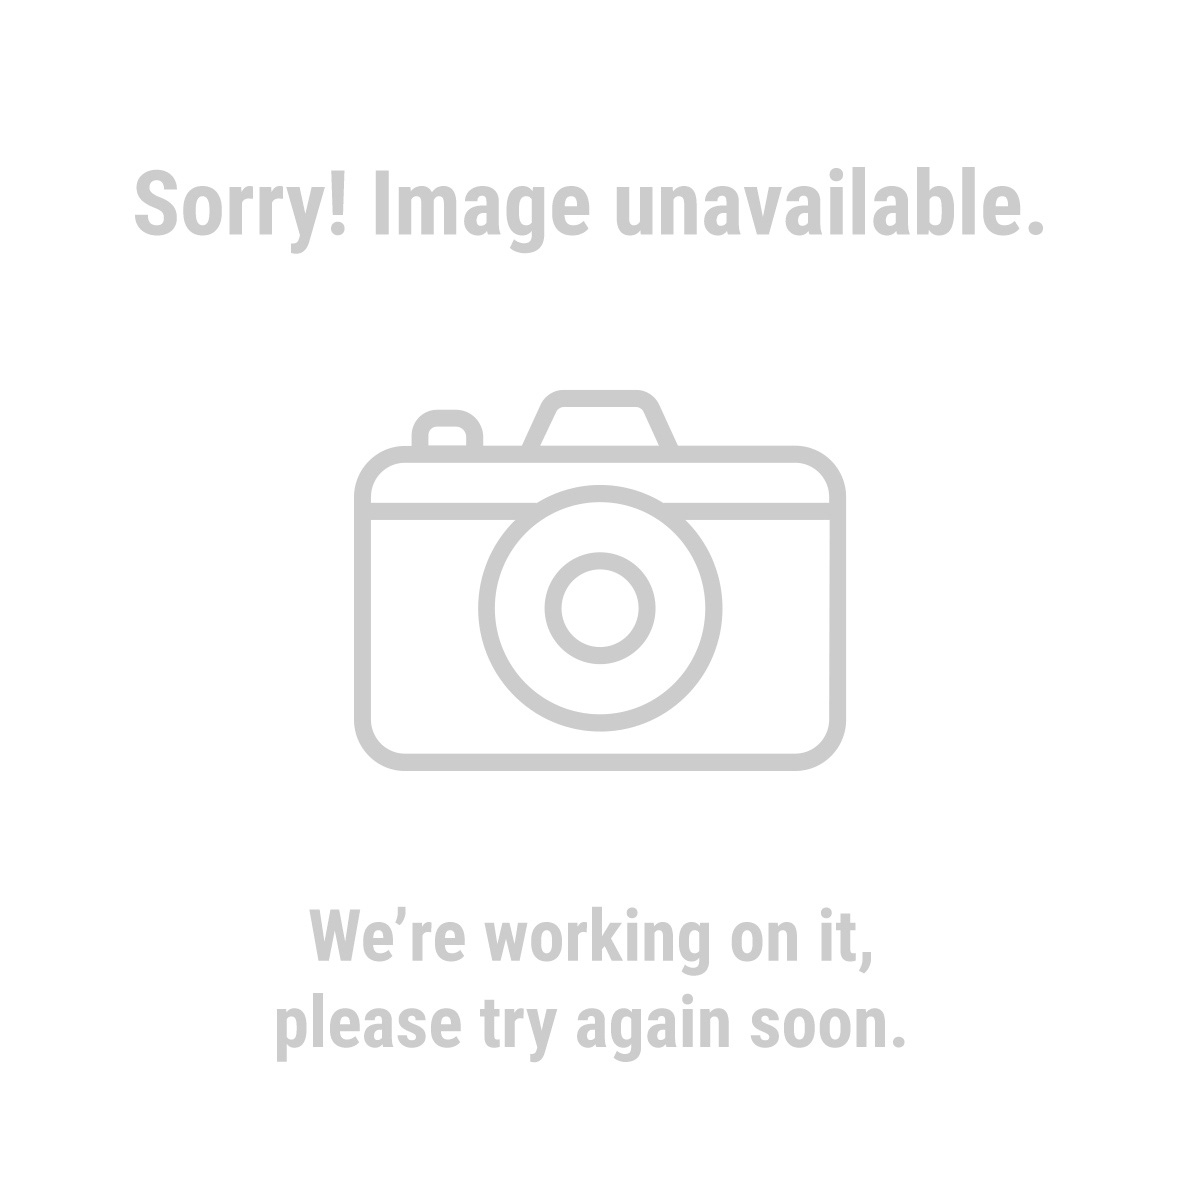 ShelterLogic 68778 12 ft x 12 ft Square Shade Sail,